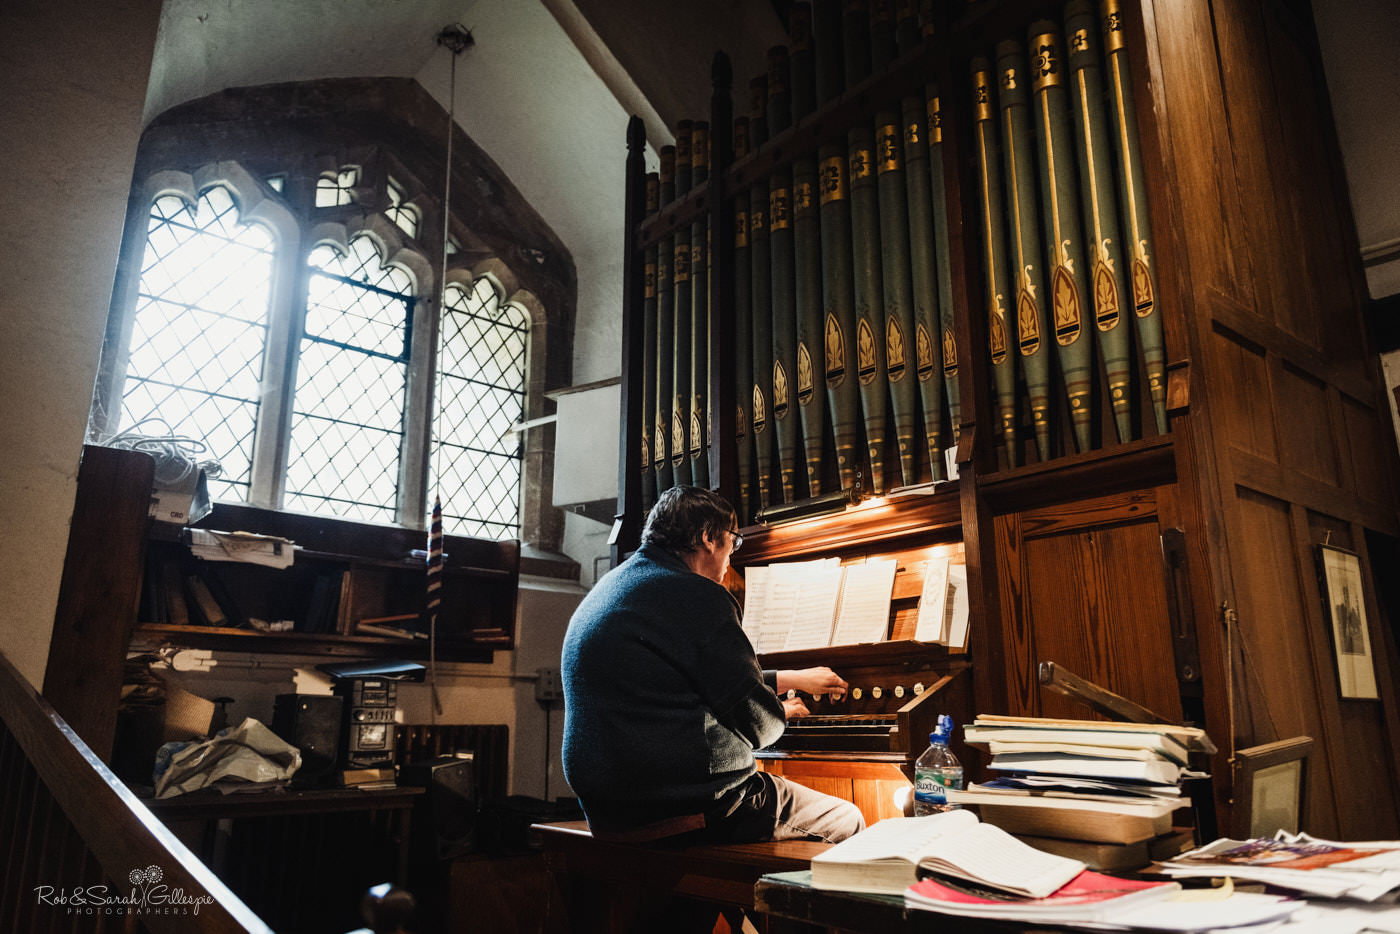 Organist plays pipe organ at St Kenelm's church in Romsley, Worcestershire